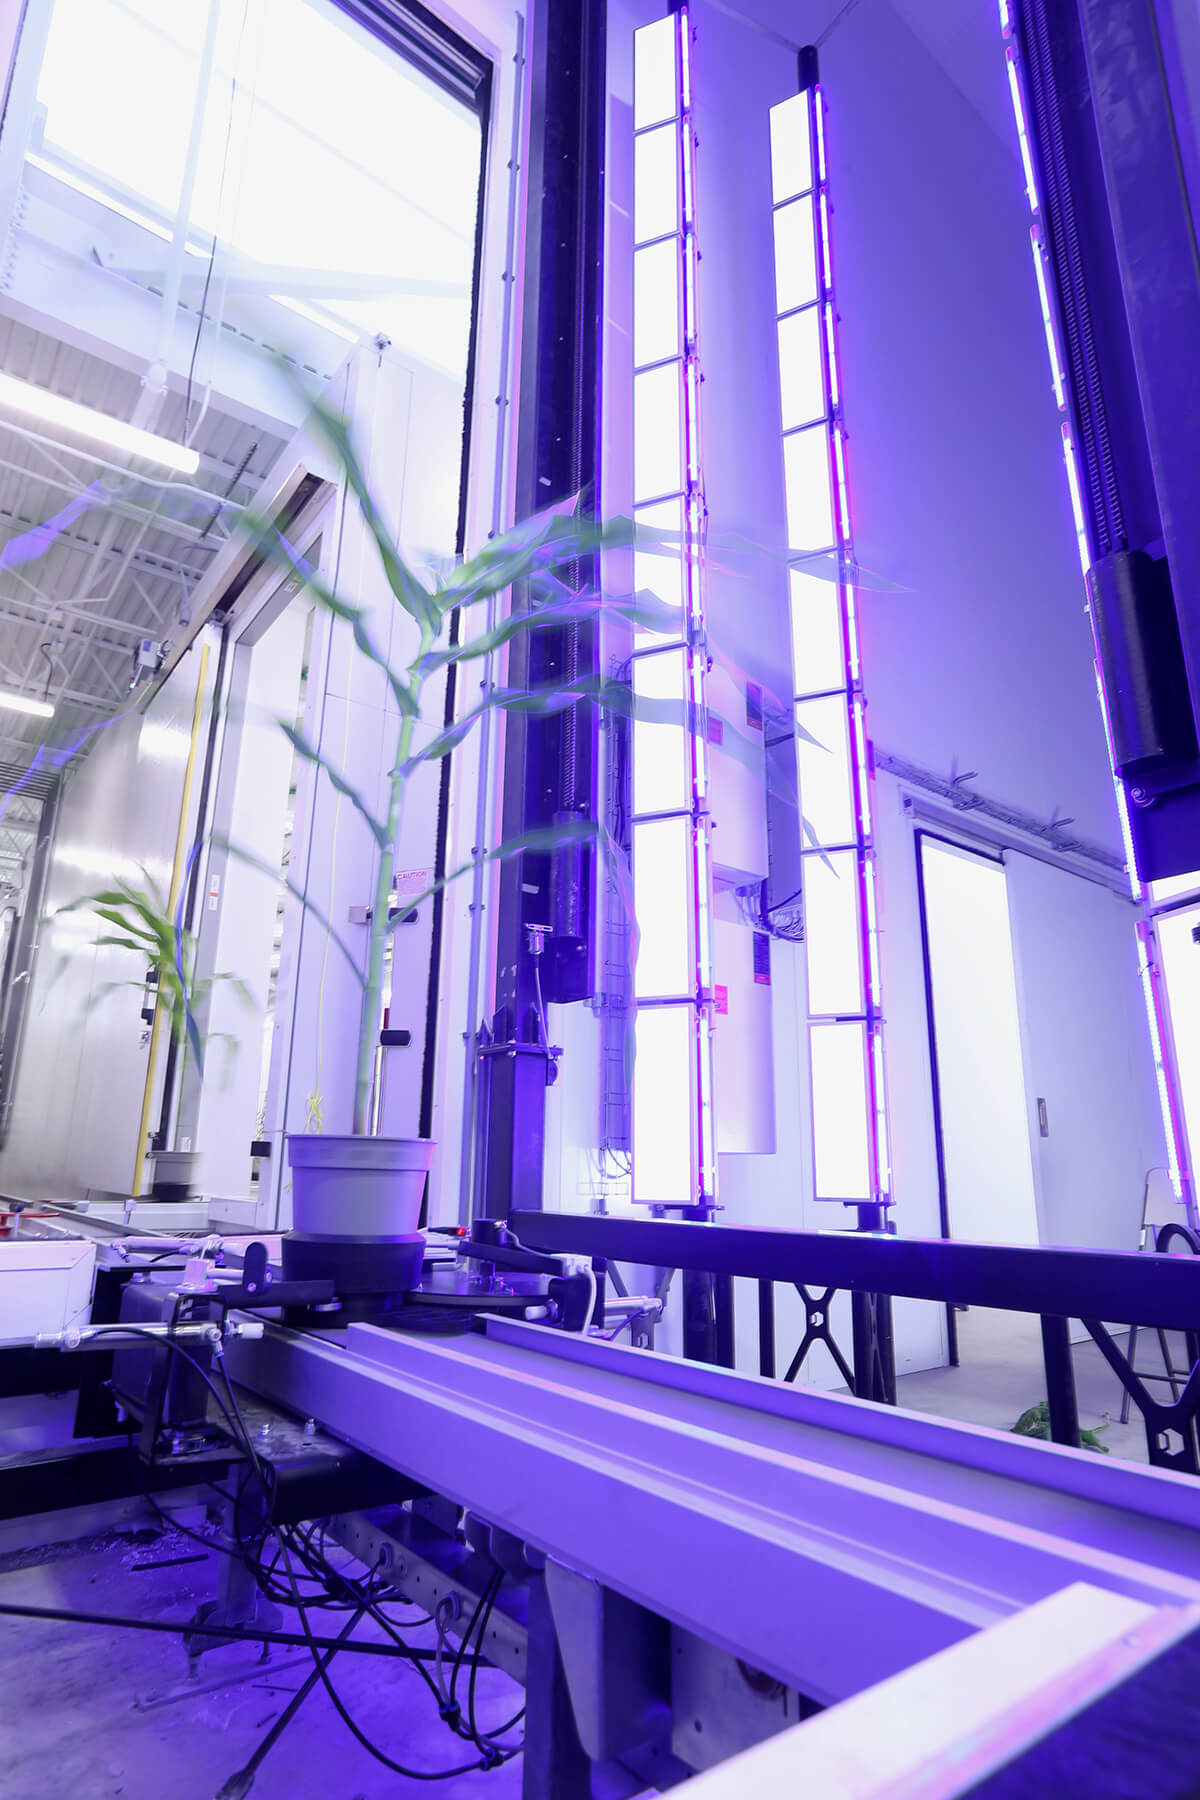 Controlled environment phenotyping